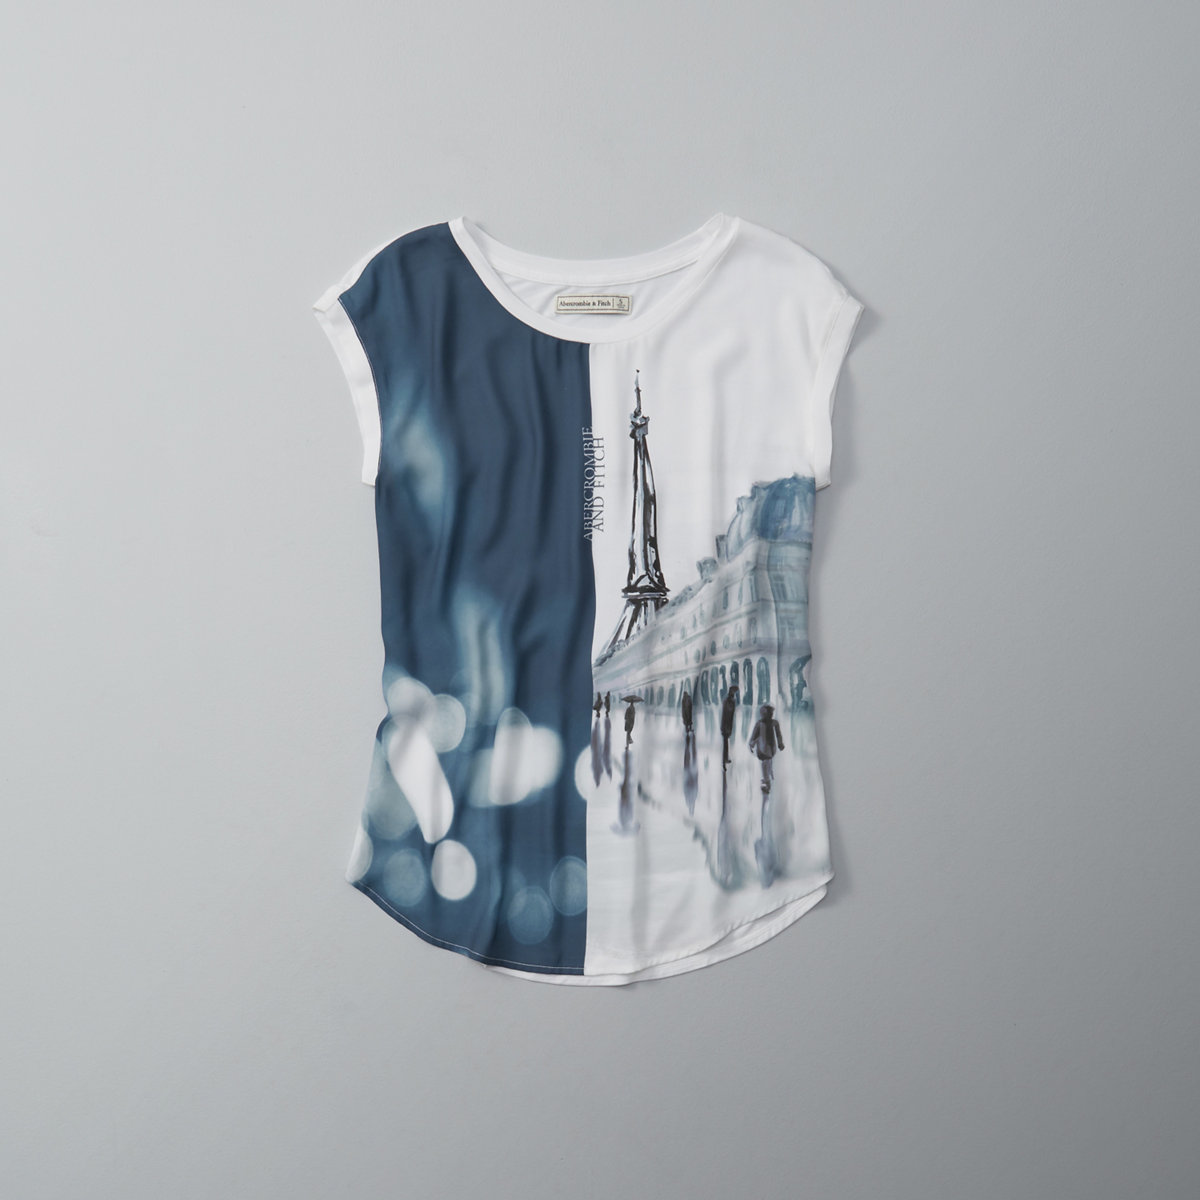 Sublimated Graphic Tee